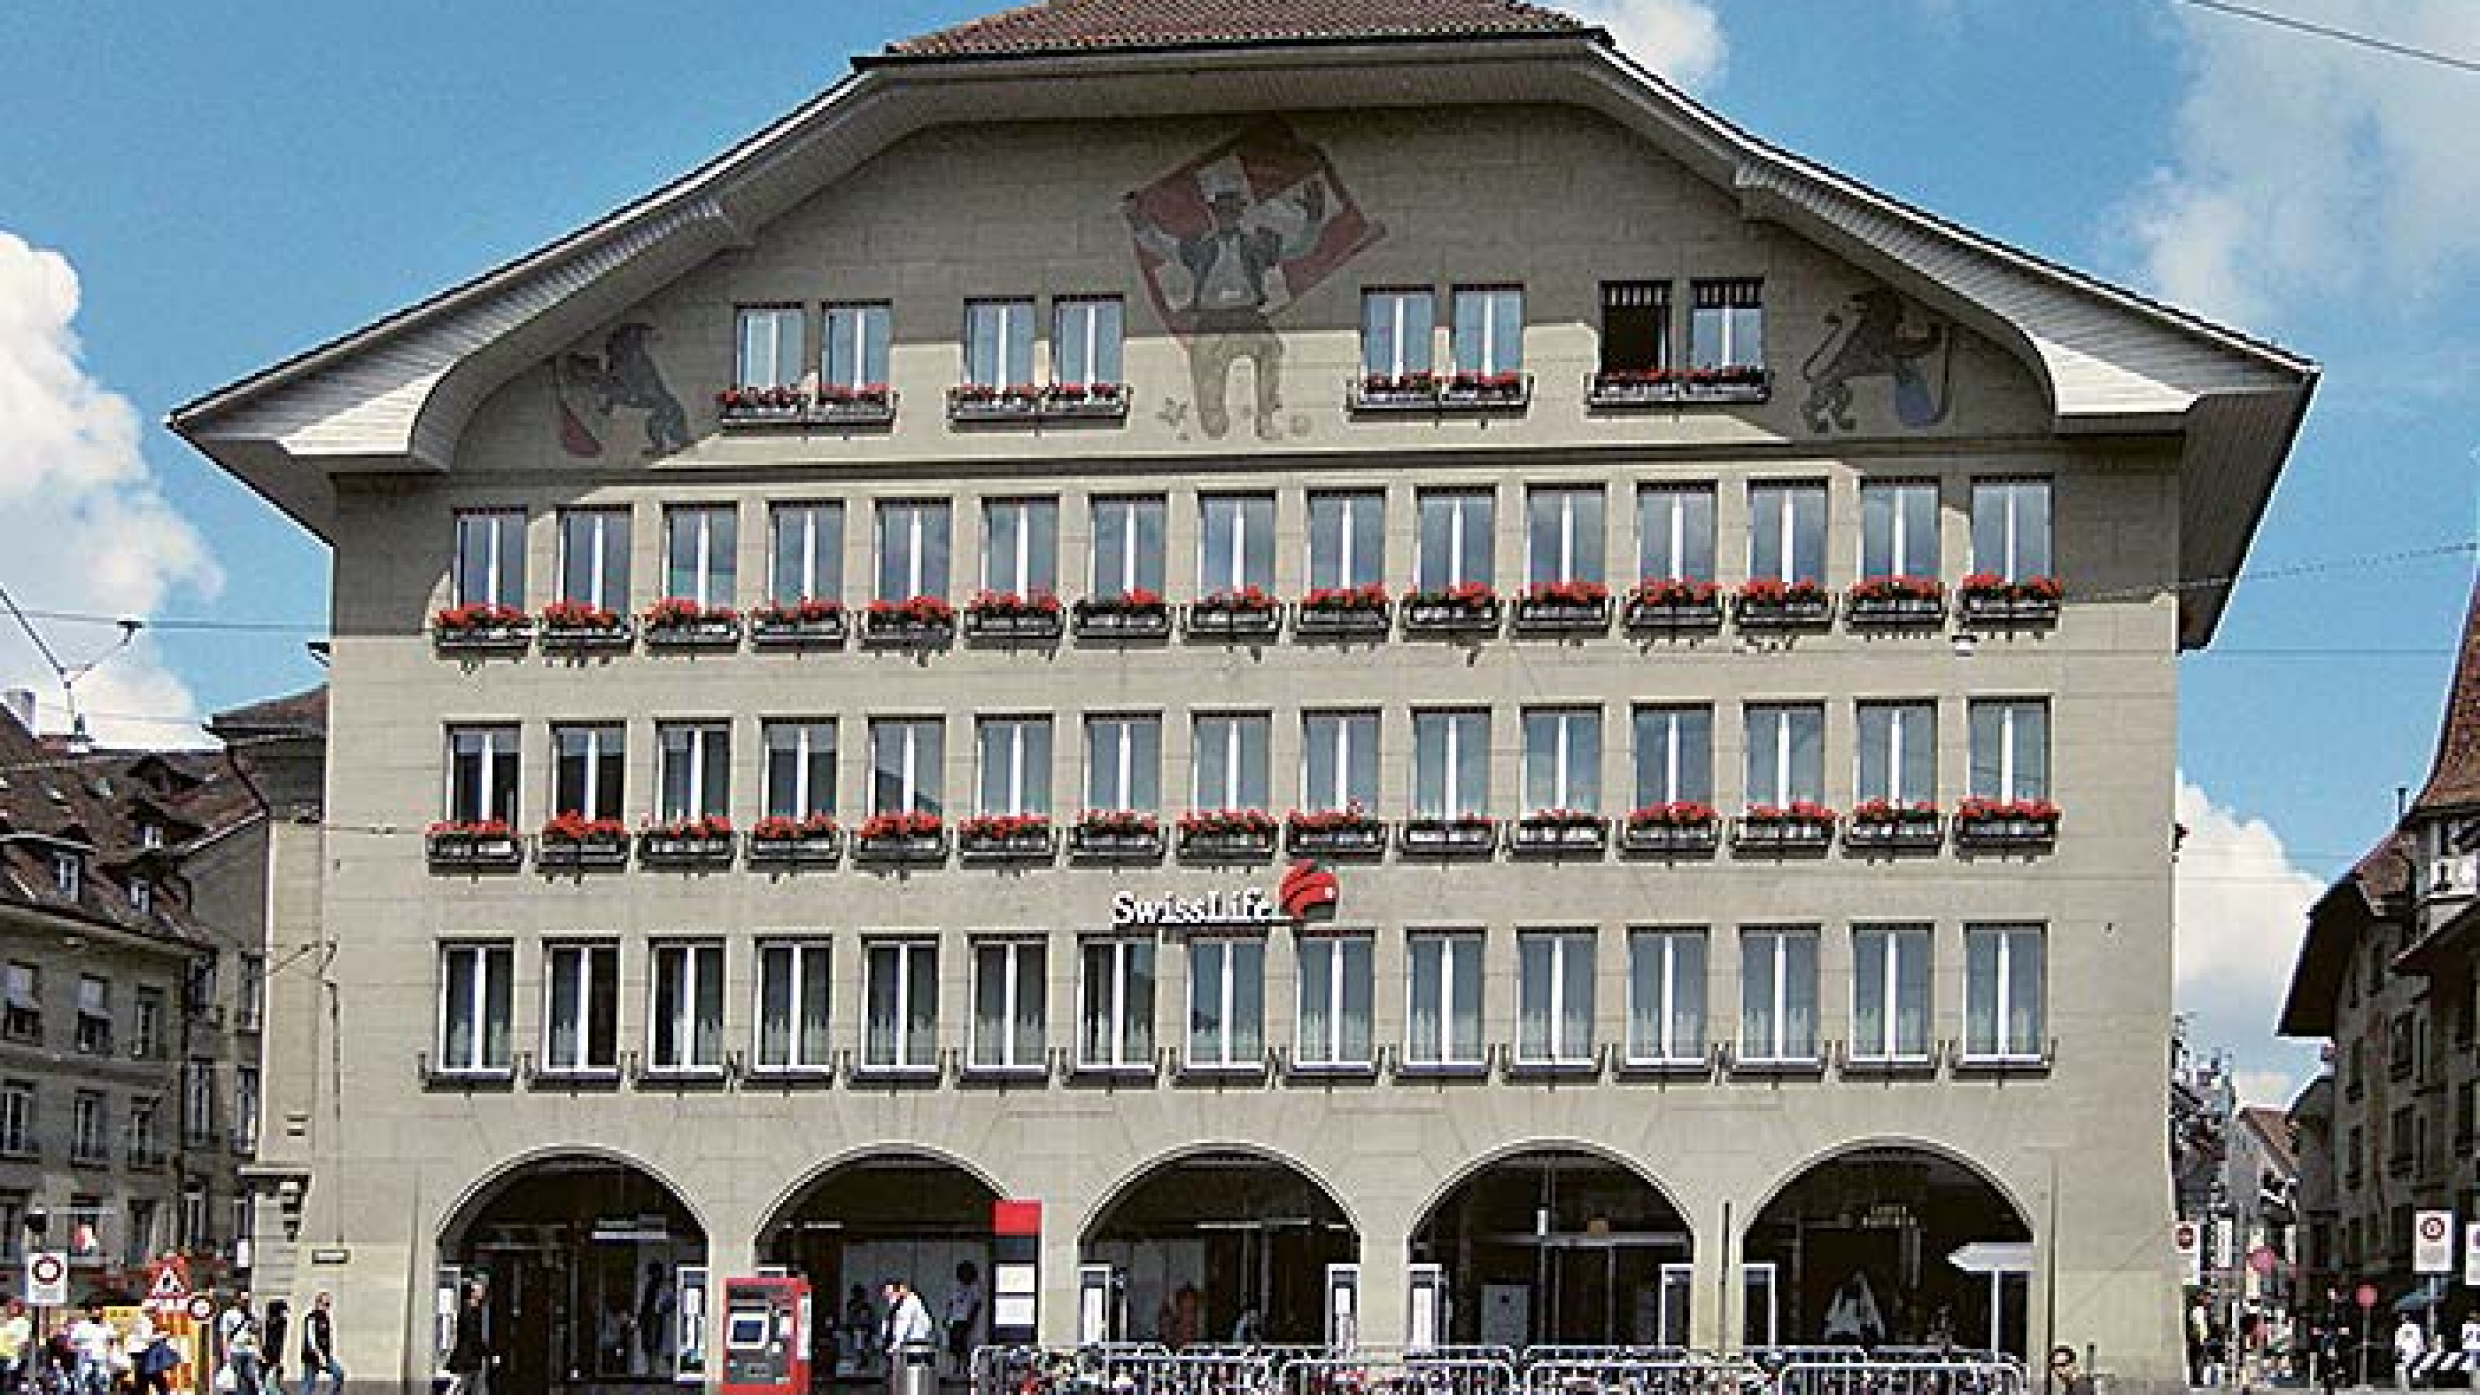 Casinoplatz 2, Bern